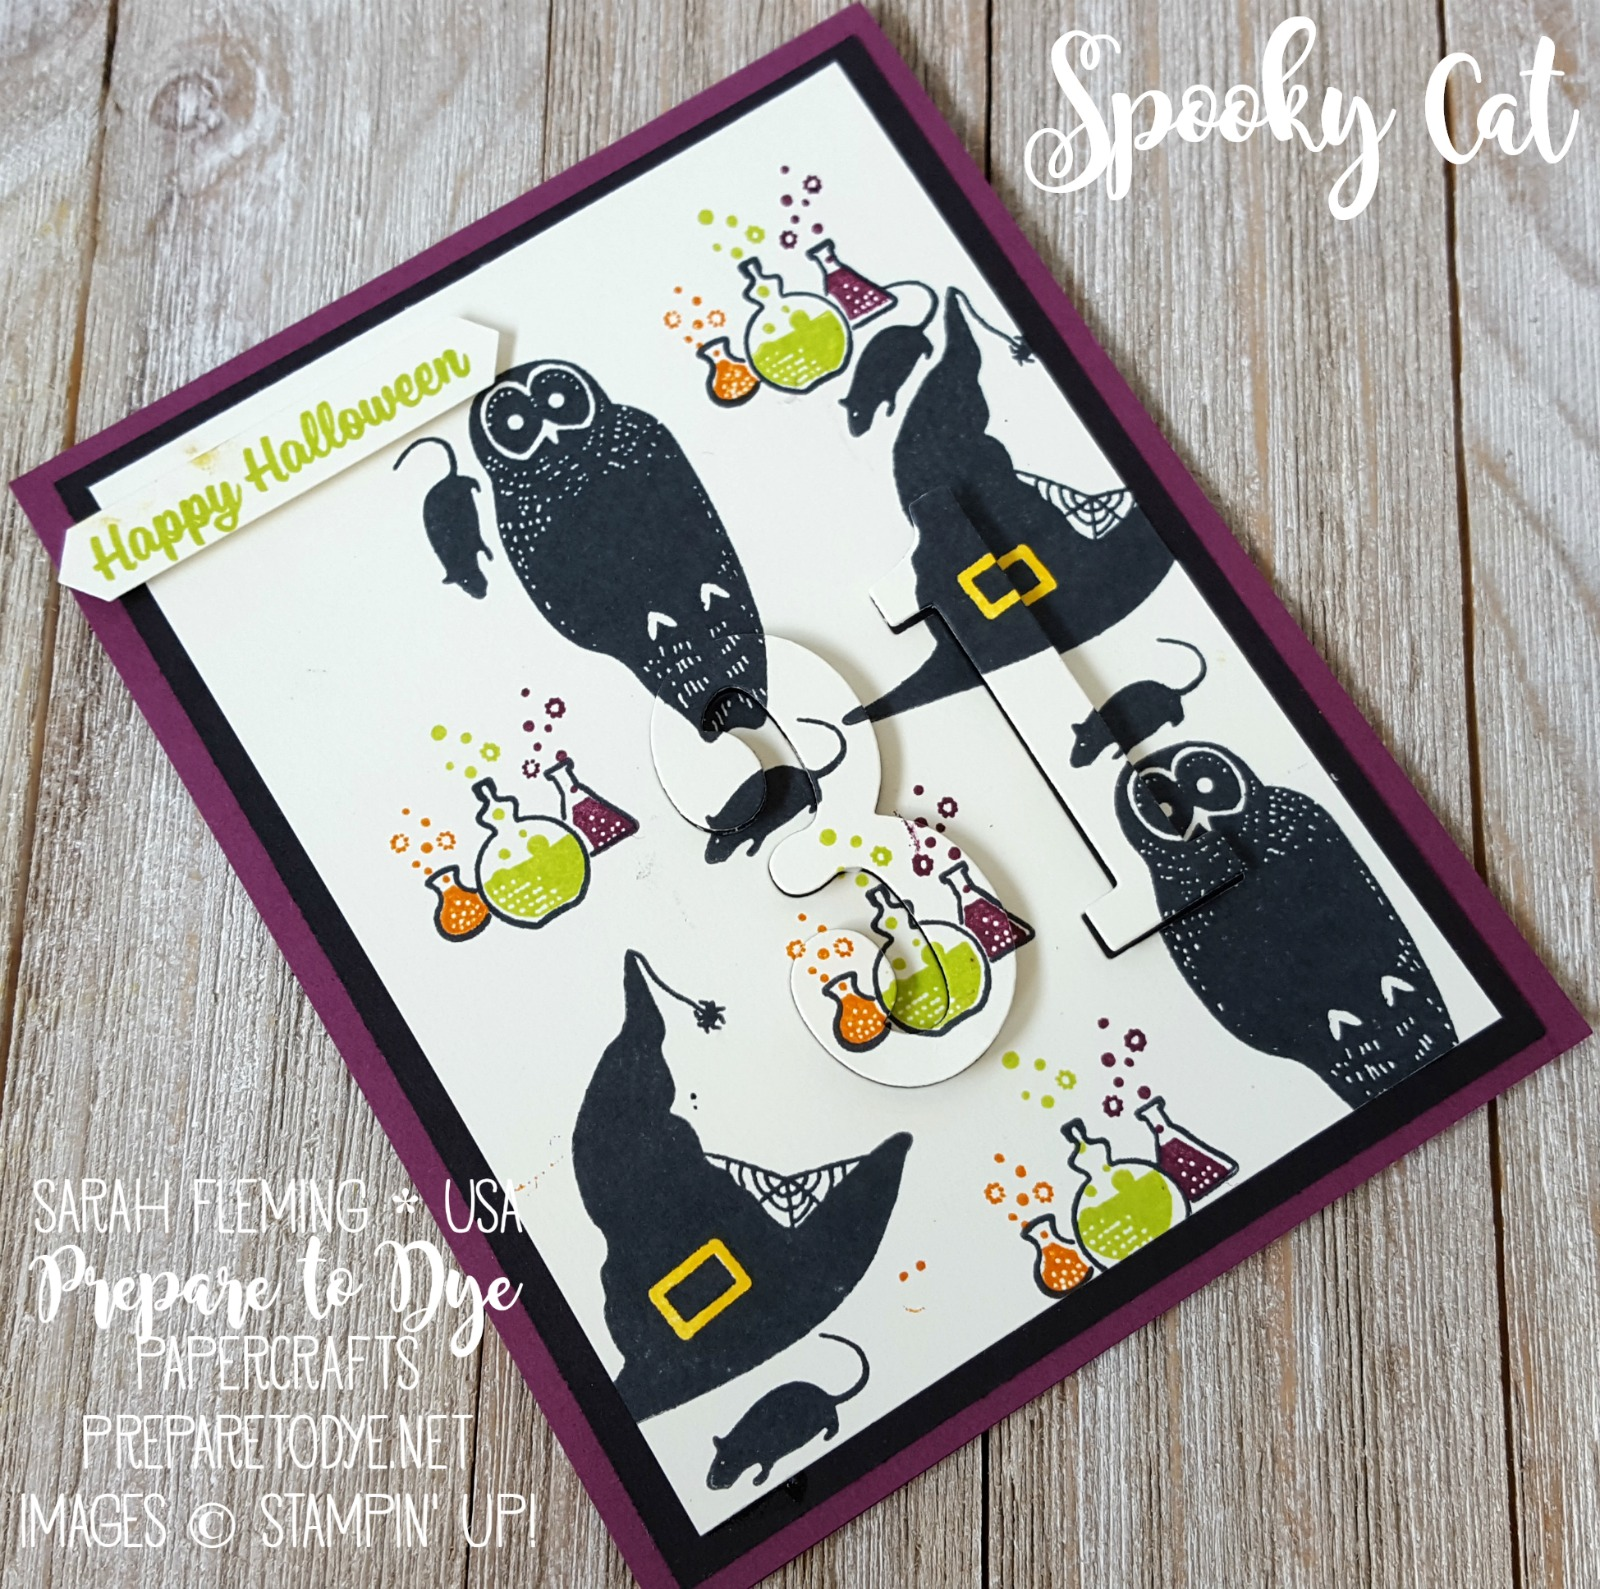 Stampin' Up! Spooky Cat eclipse handmade Halloween card with Large Numbers framelits, Classic Label Punch - Sarah Fleming - Prepare to Dye Papercrafts